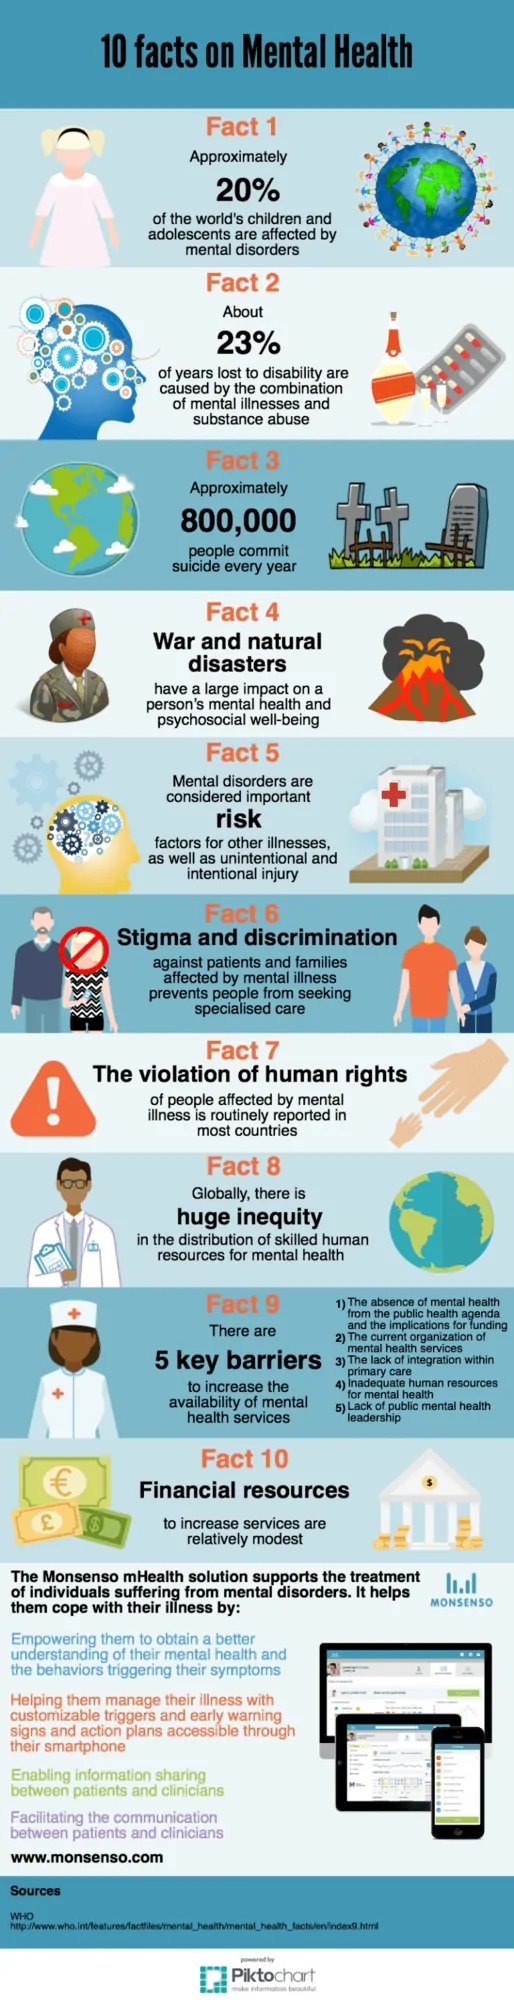 10 Facts On Mental Health #infographic